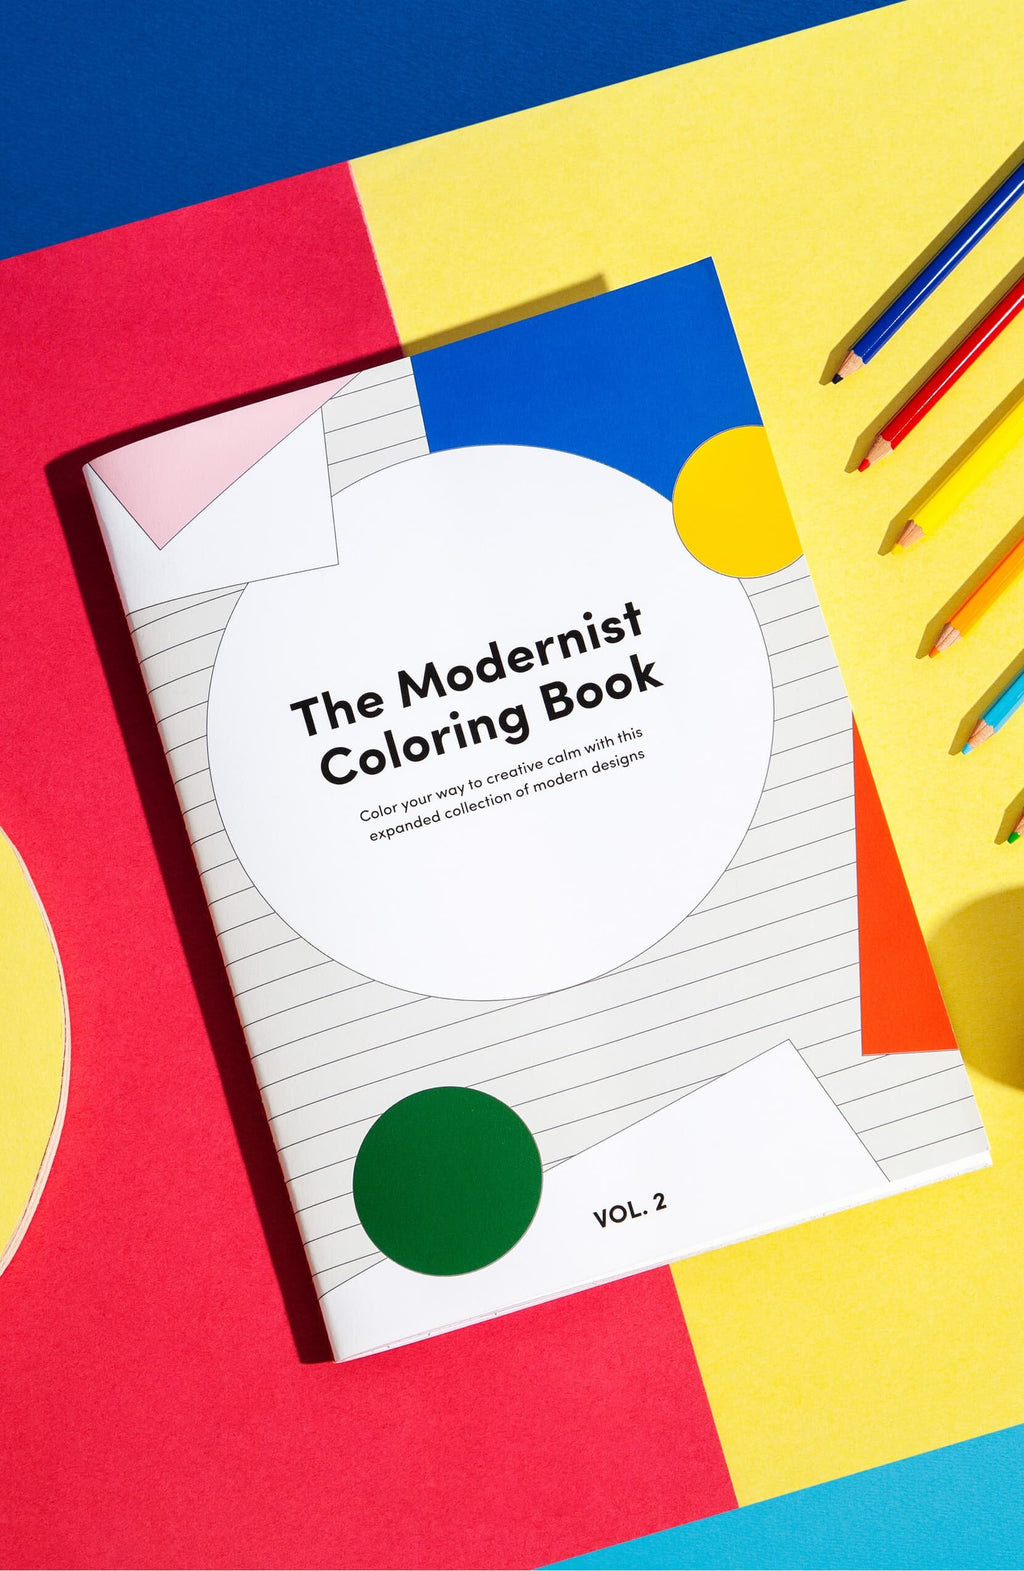 The Modernist Colouring Book